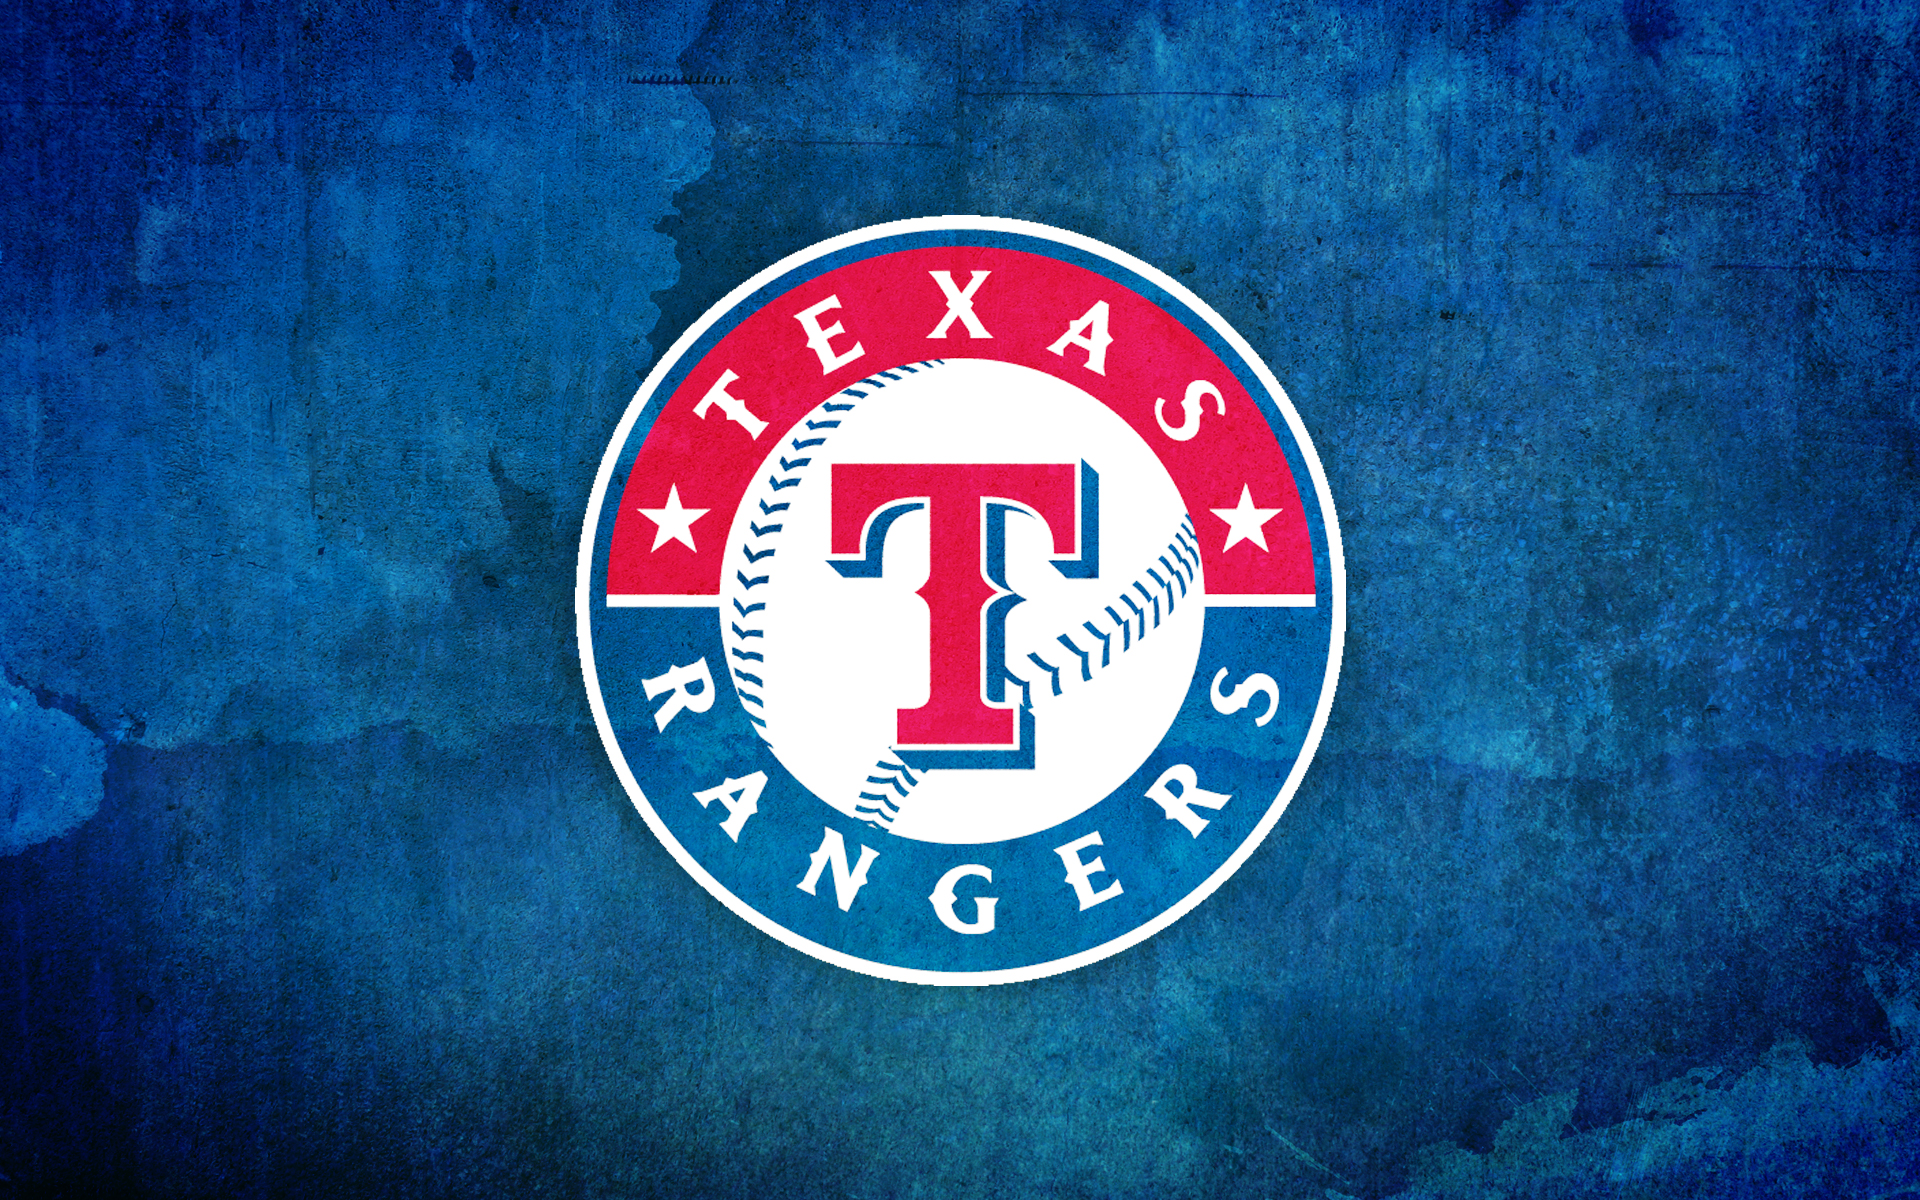 Texas Ranger Wallpaper